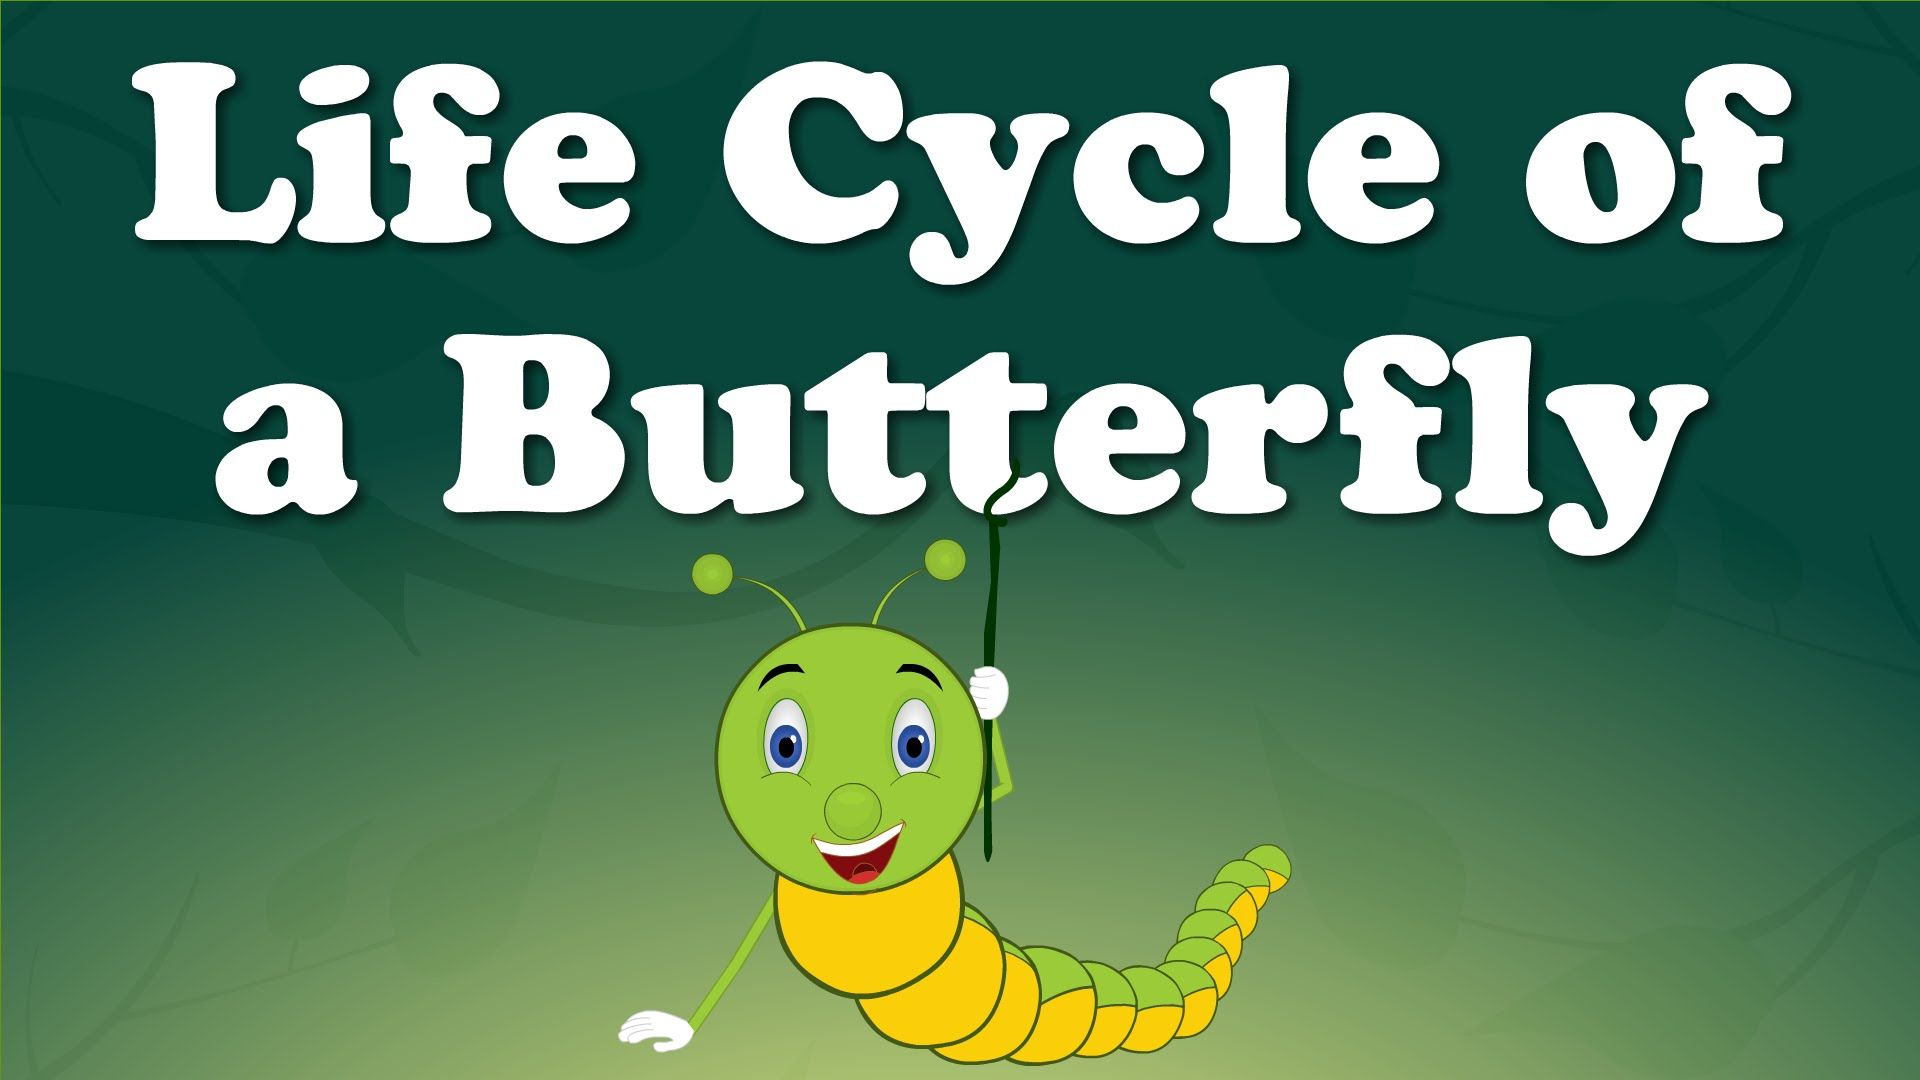 You Will Learn About Life Cycle Of A Butterfly In This Video A Butterfly Lays Eggs On The